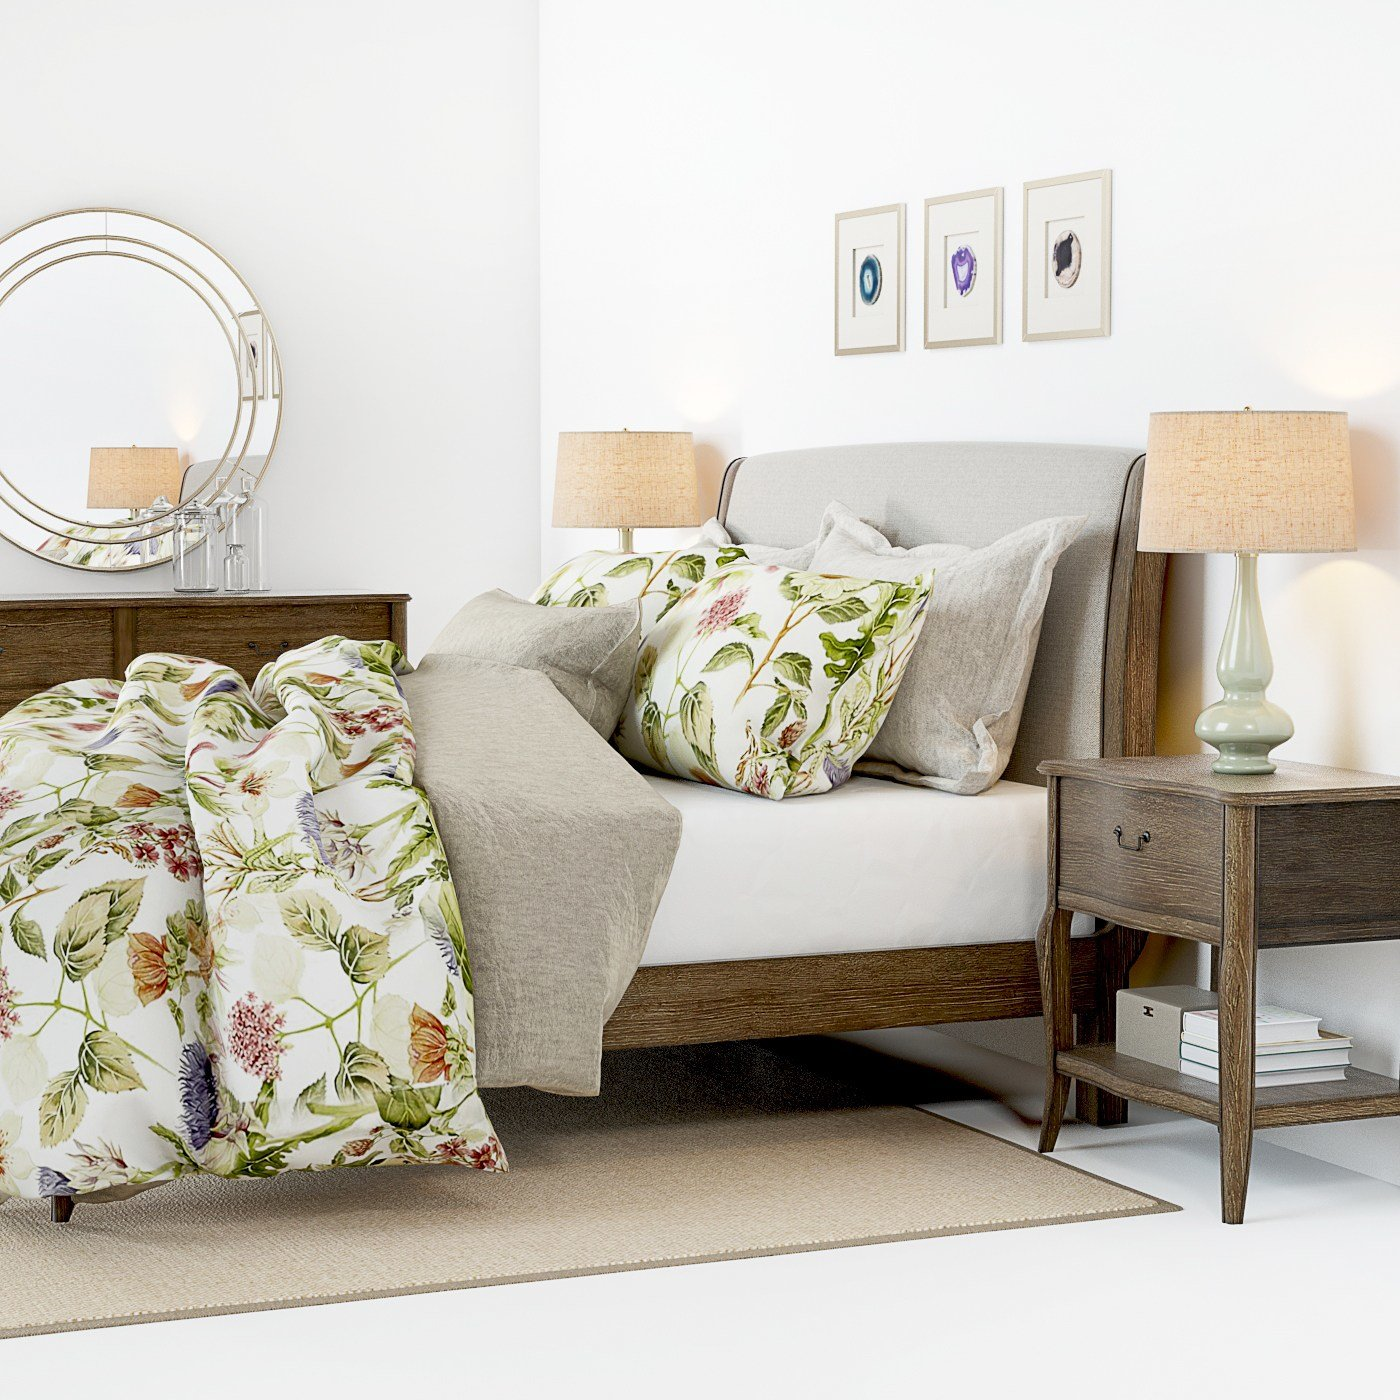 Best 3D Model Pottery Barn Calistoga Bed Furniture 3D Models With Pictures